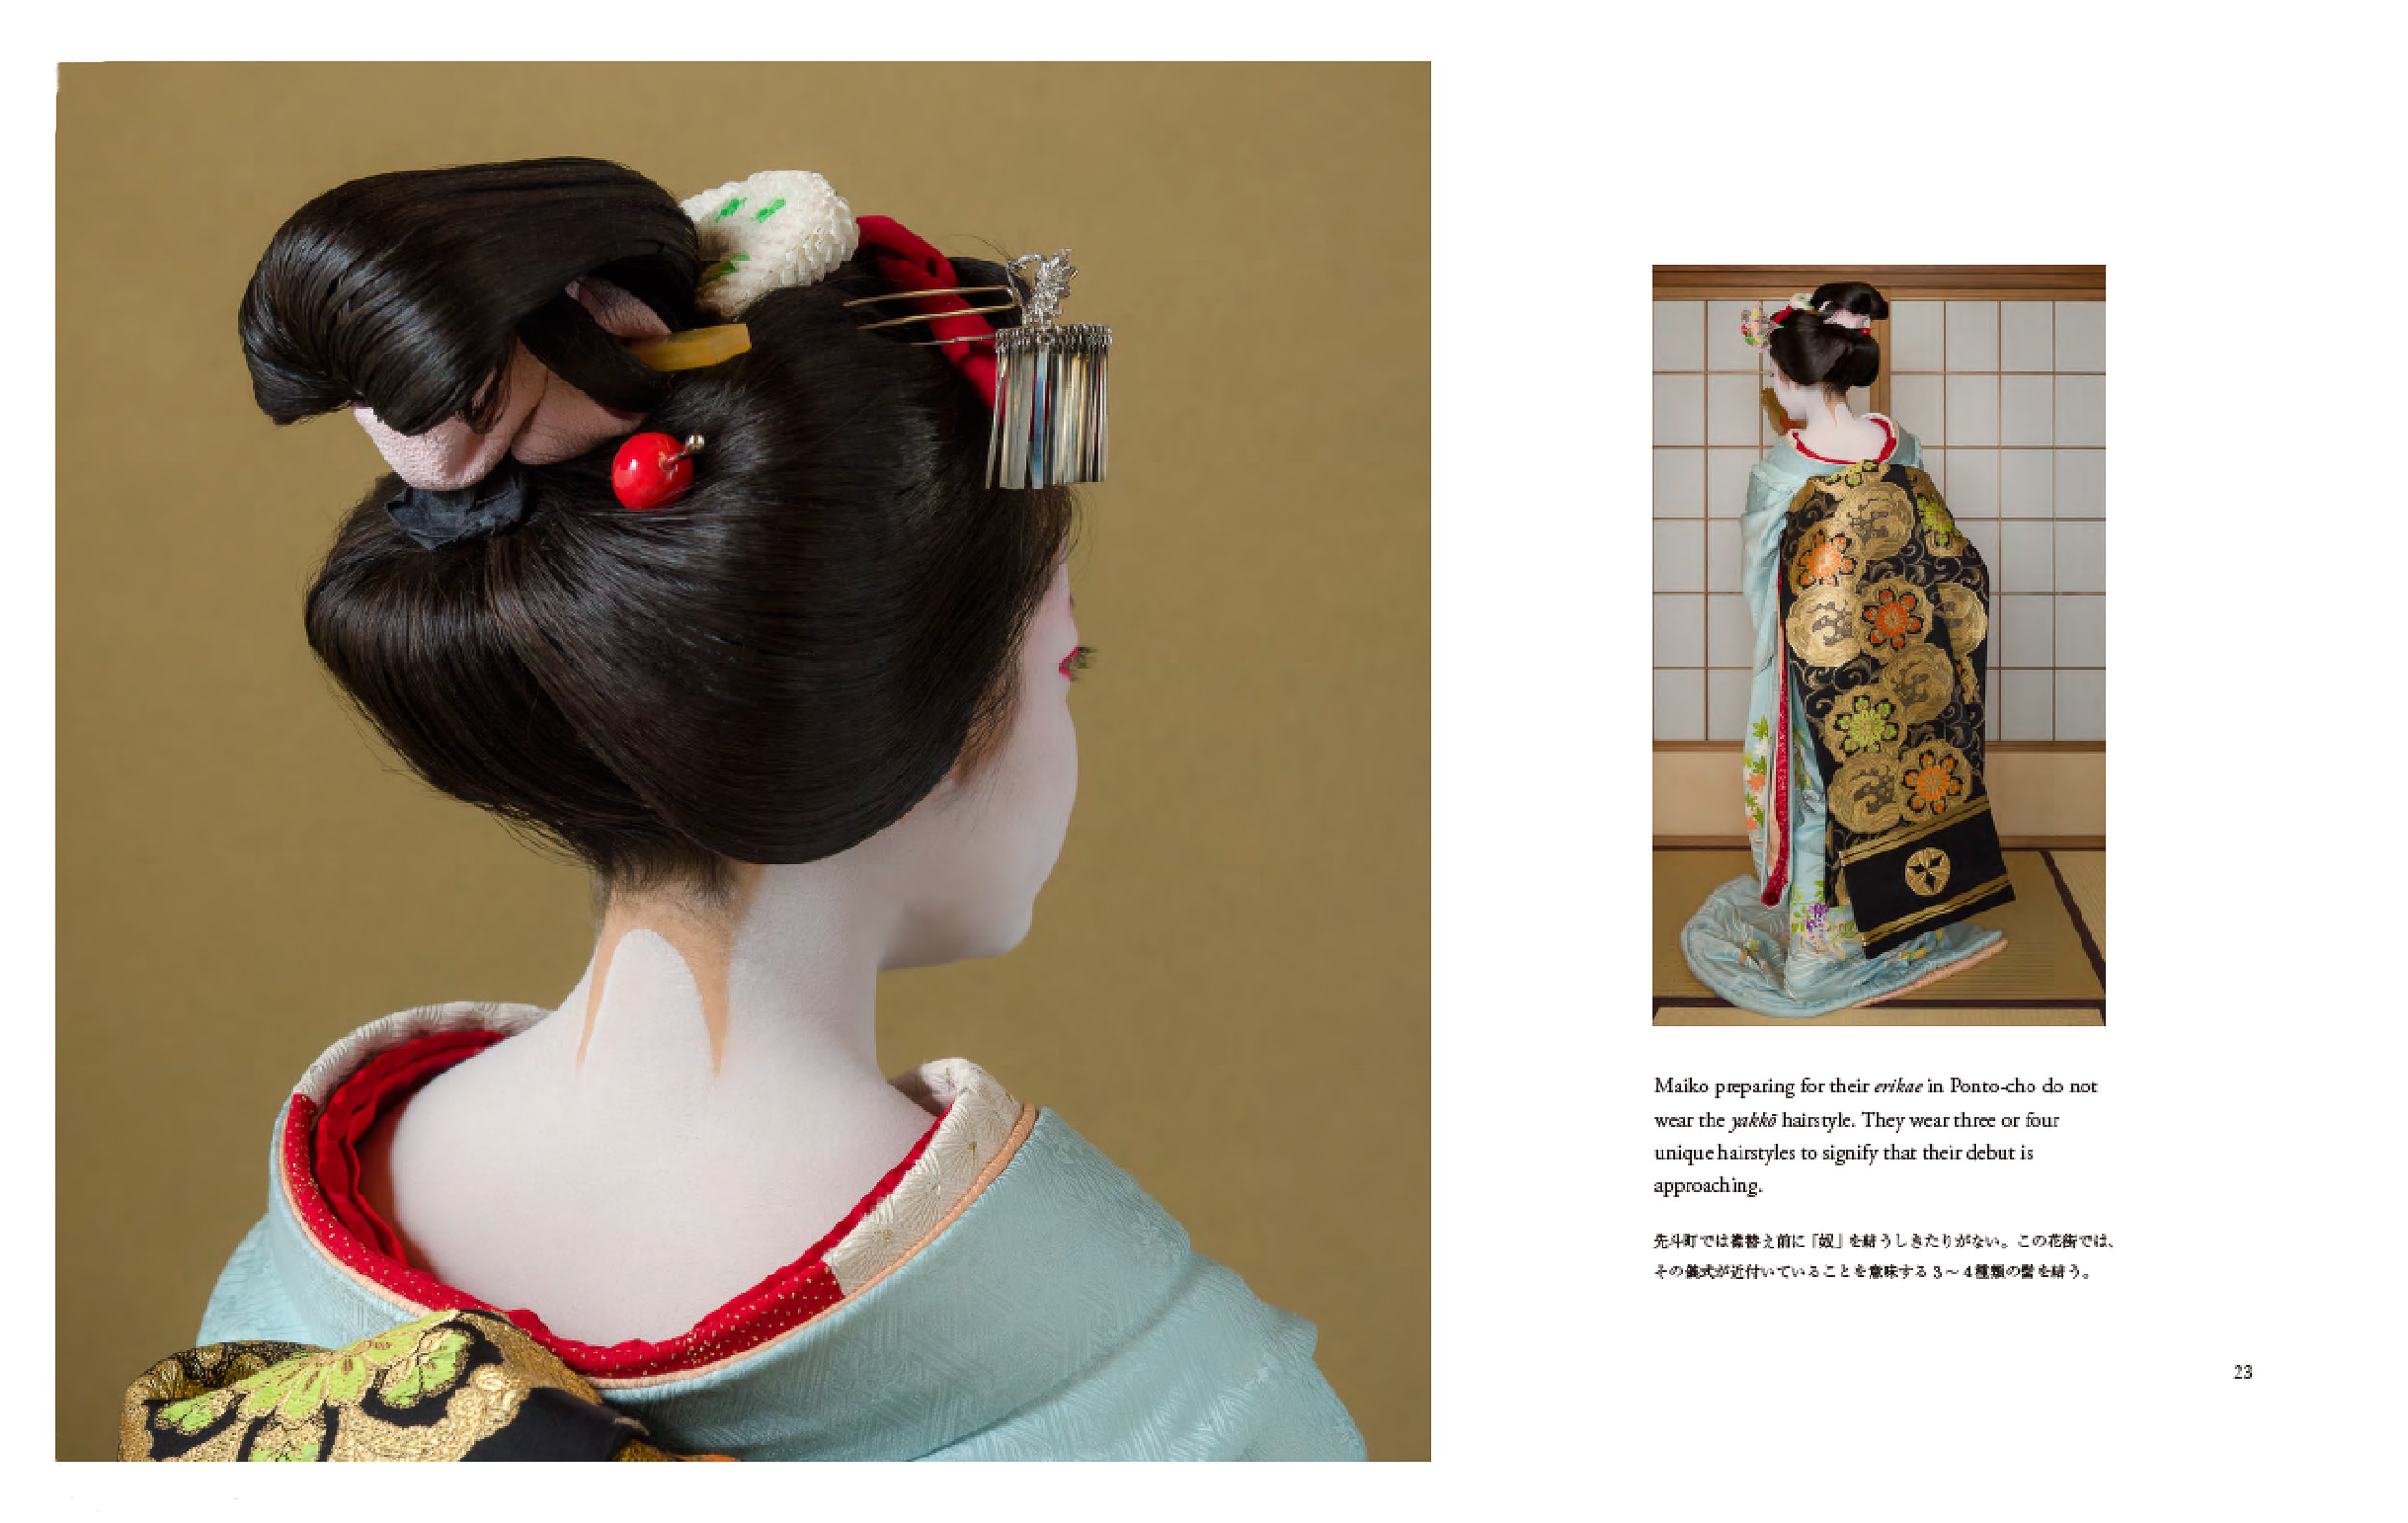 Now-a-Geisha-pages-22-23.jpg